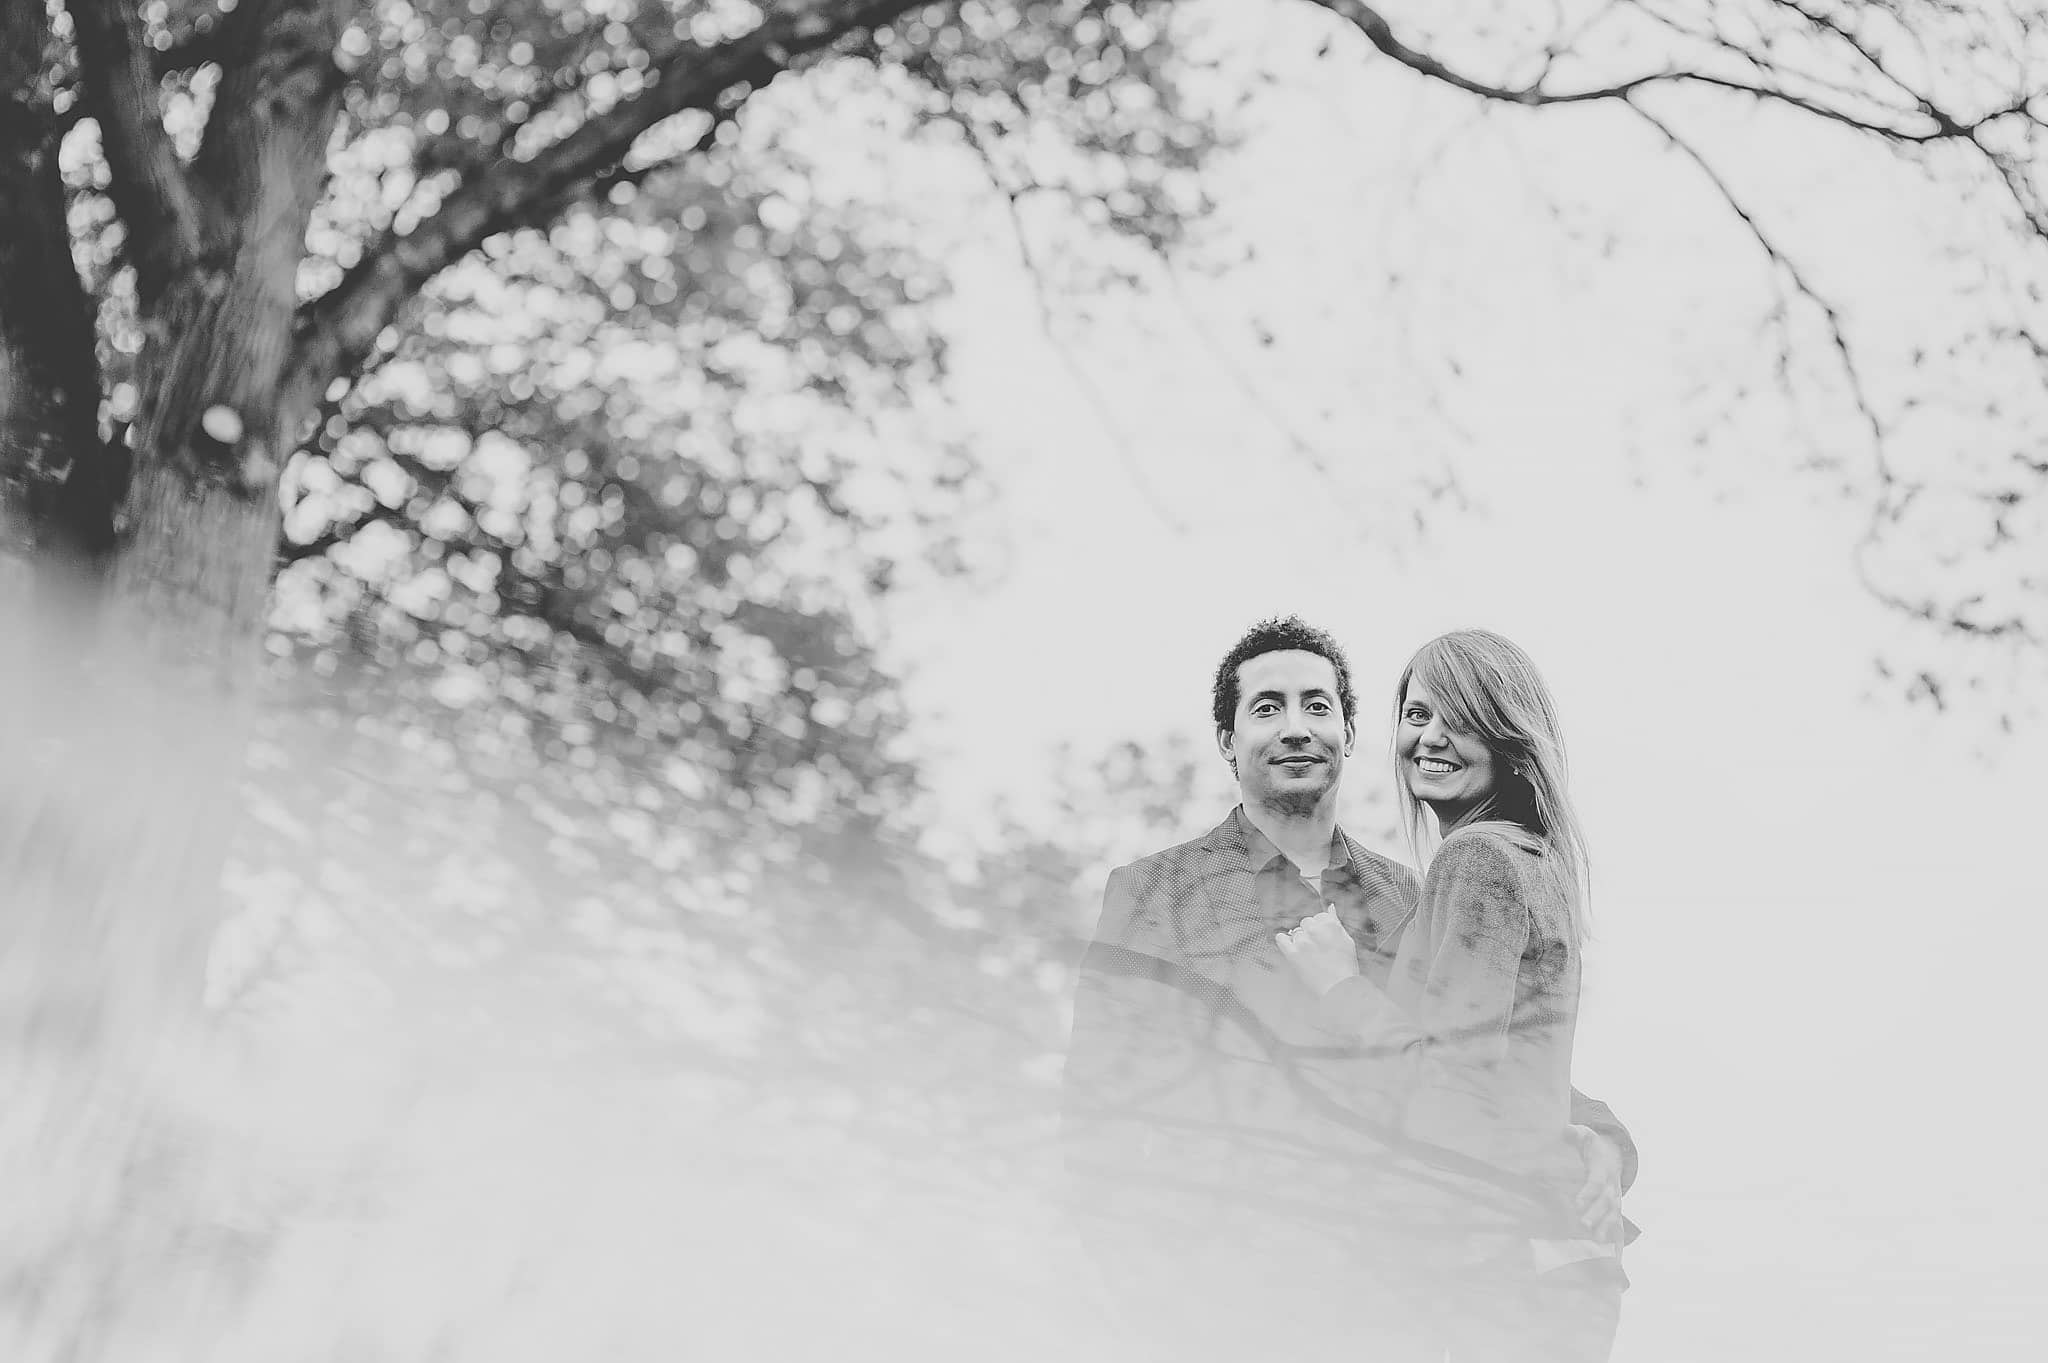 engagement photography worcester 6 - Chris + Malgosia | Engagement photography Worcester